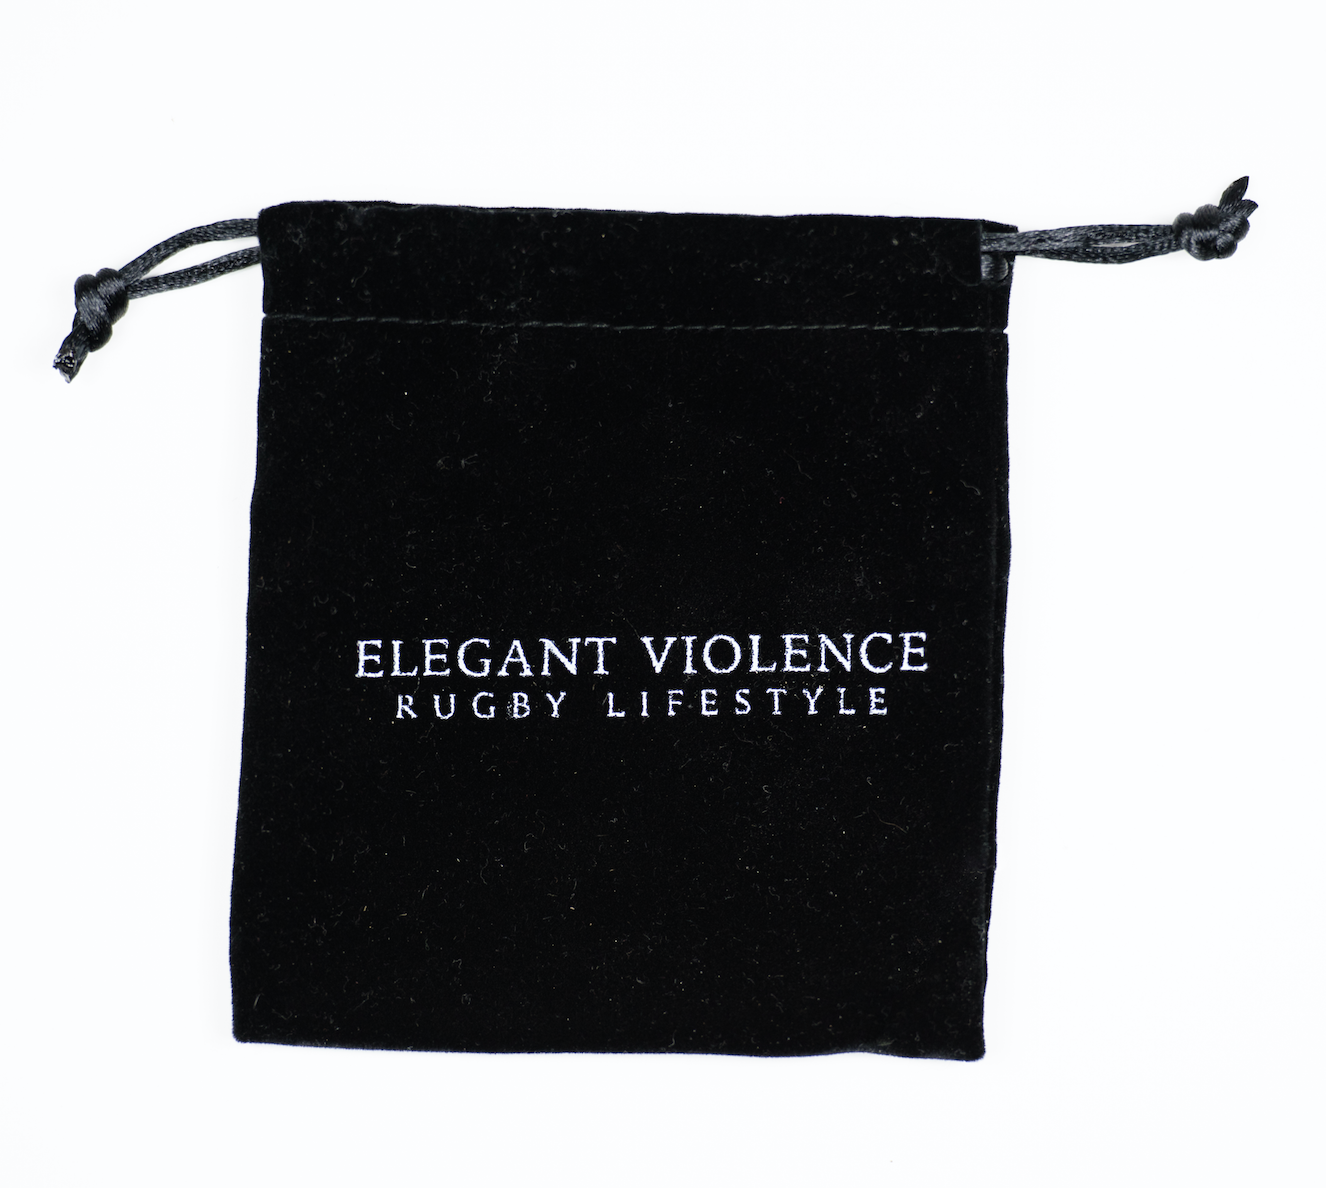 Turquoise w/ Silver Rugby Ball - Elegant Violence Rugby Lifestyle